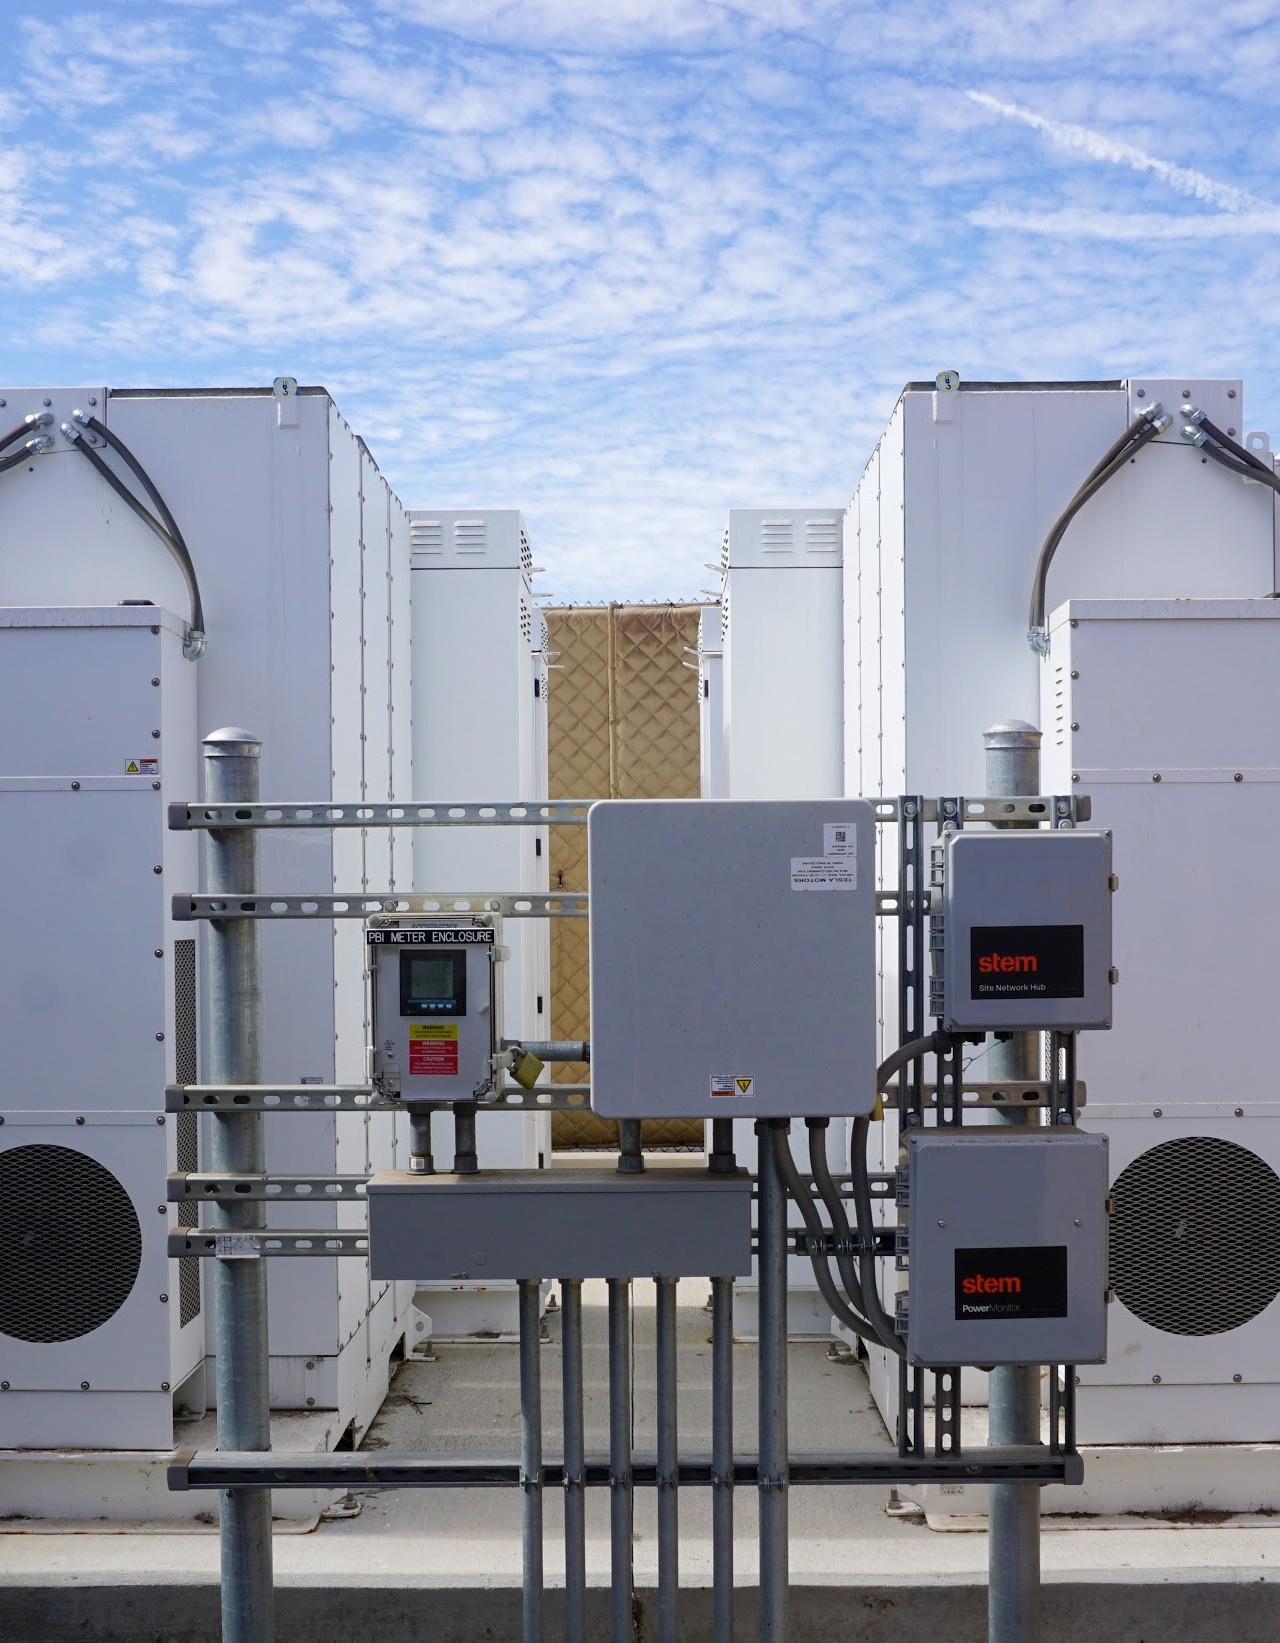 Stem energy storage system